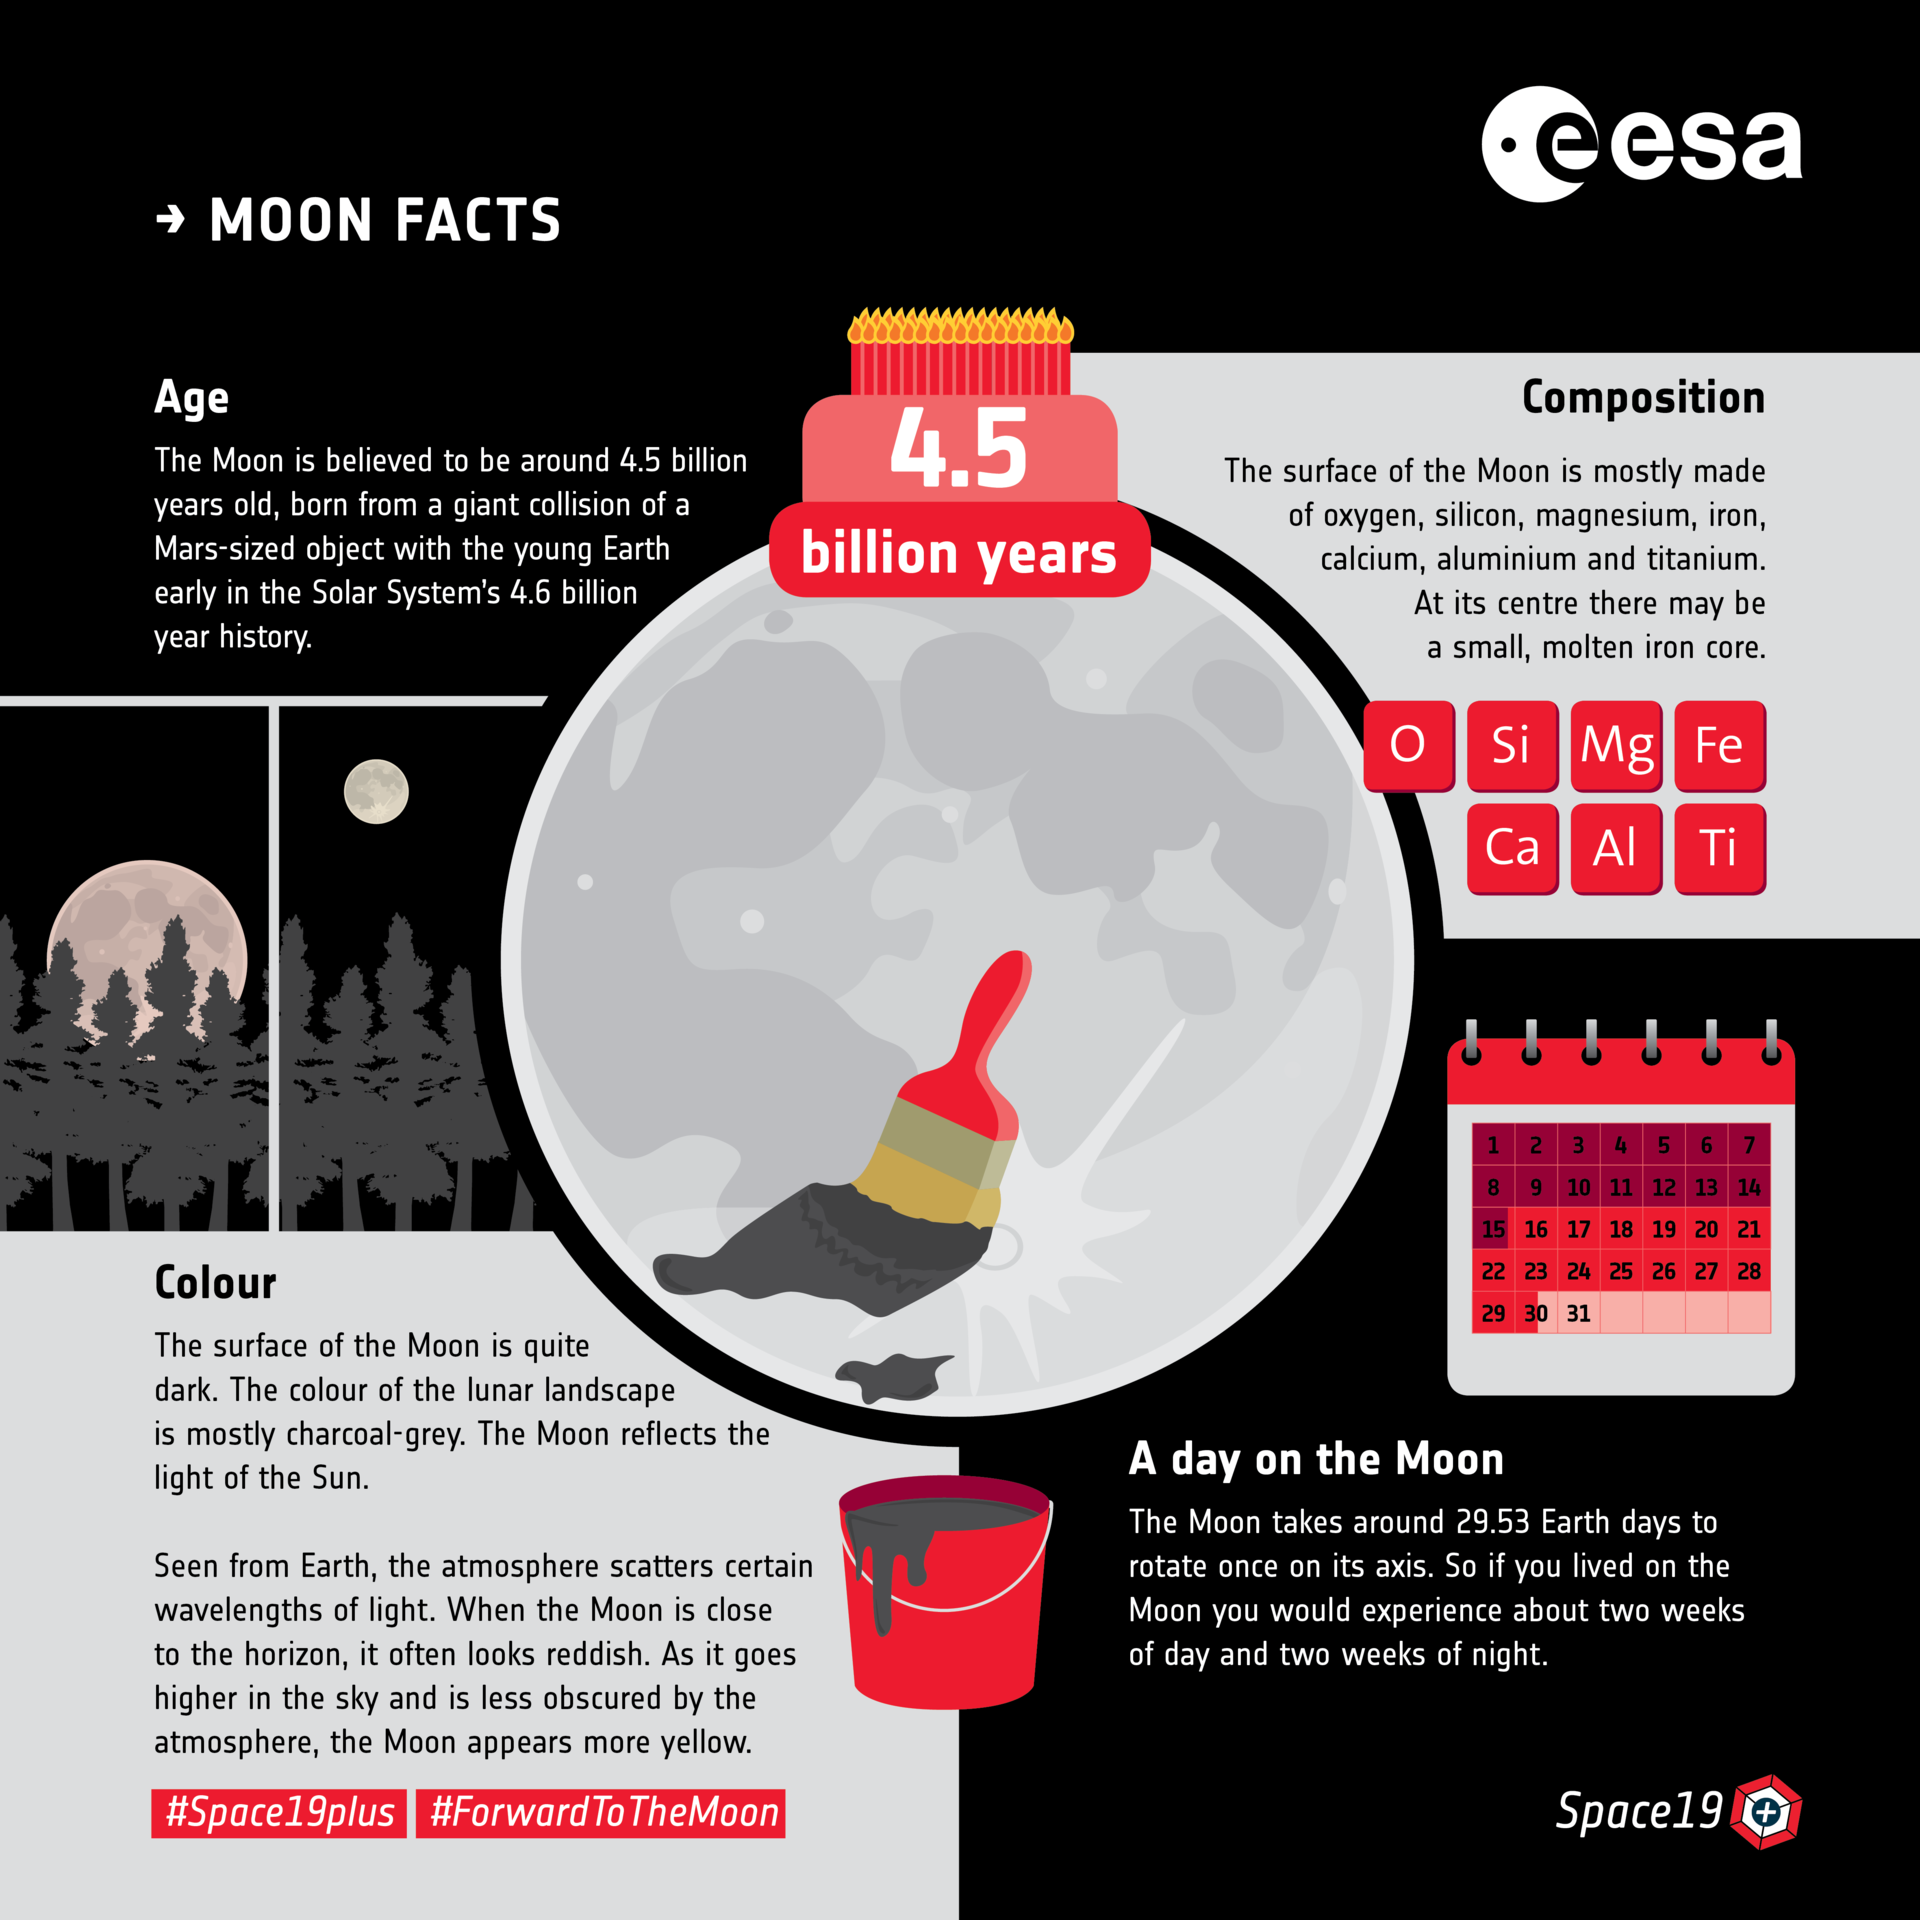 Moon facts: age and composition